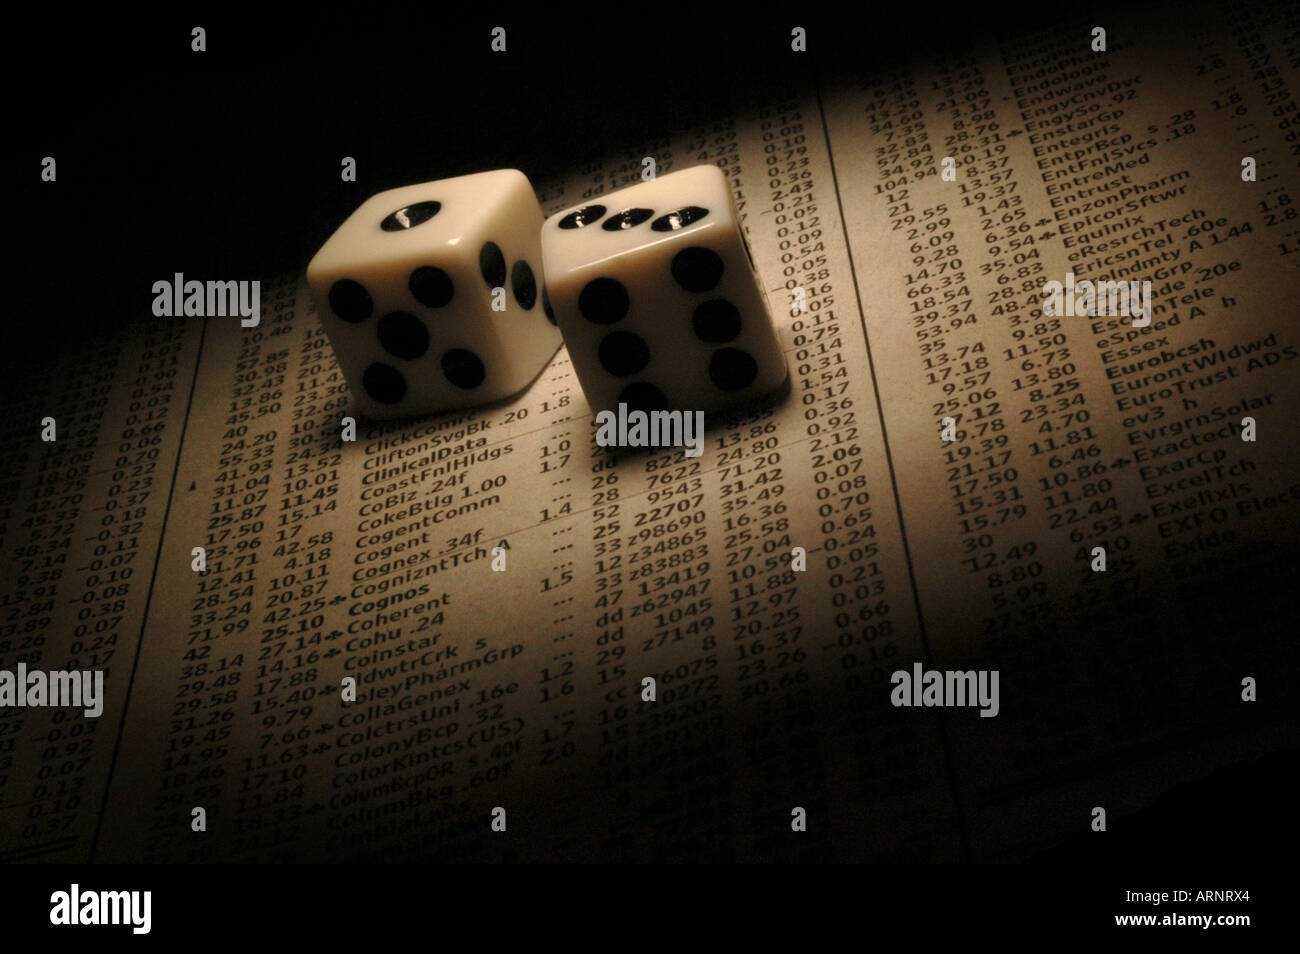 Dice on a page of stock prices - Stock Image